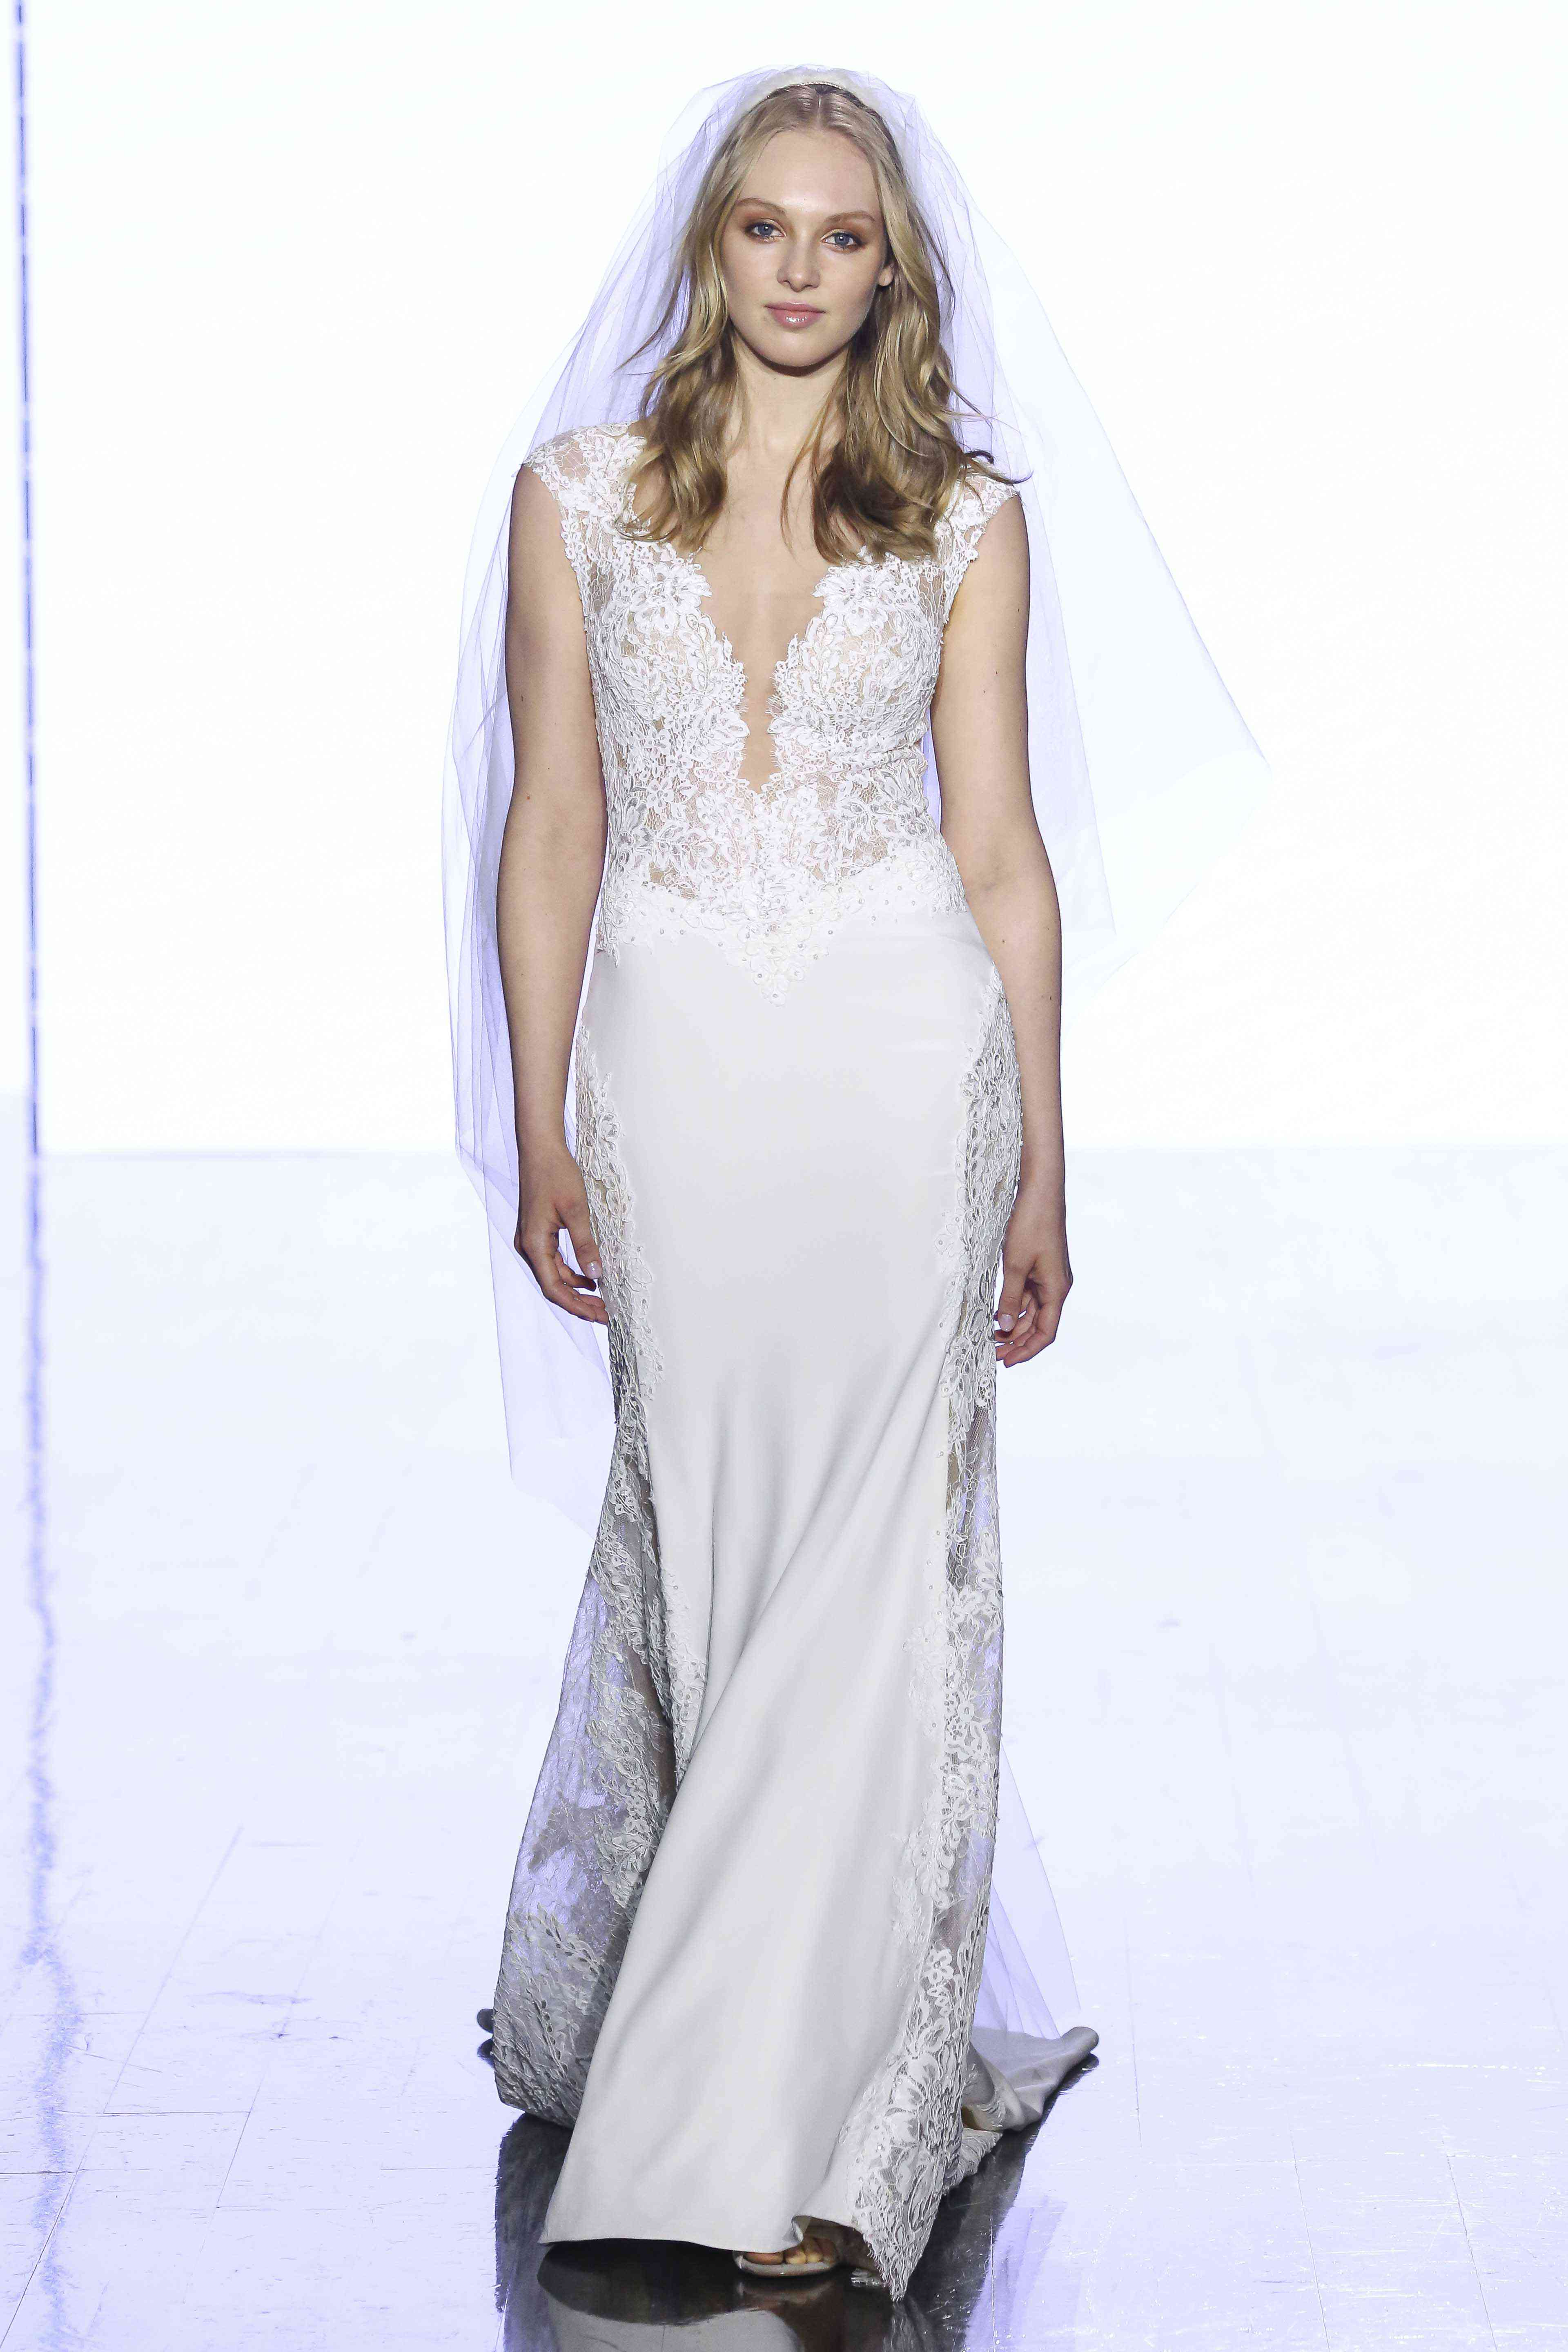 Model in lace and crepe sheath dress with plunging illusion neckline and cap sleeves